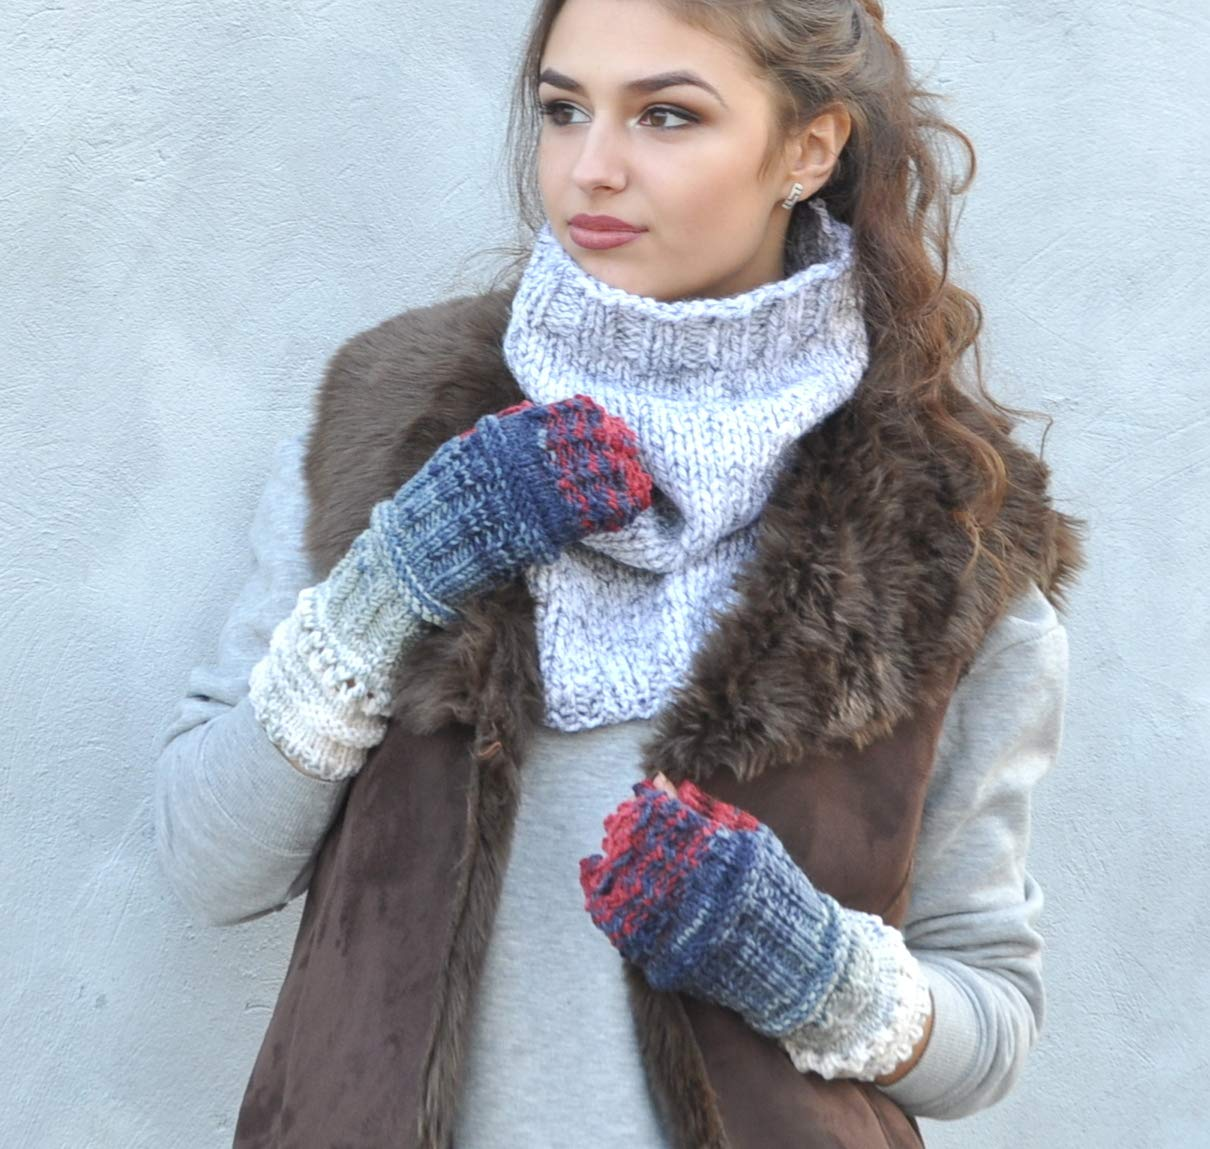 Long Cable Mittens, Fingerless Gloves, Knitted Mittens Thumb Hole Gloves, Winter Mittens, Sweet Girls Women Mittens, Hand Wrist Winter Warmer Knitted in blue jeans tones